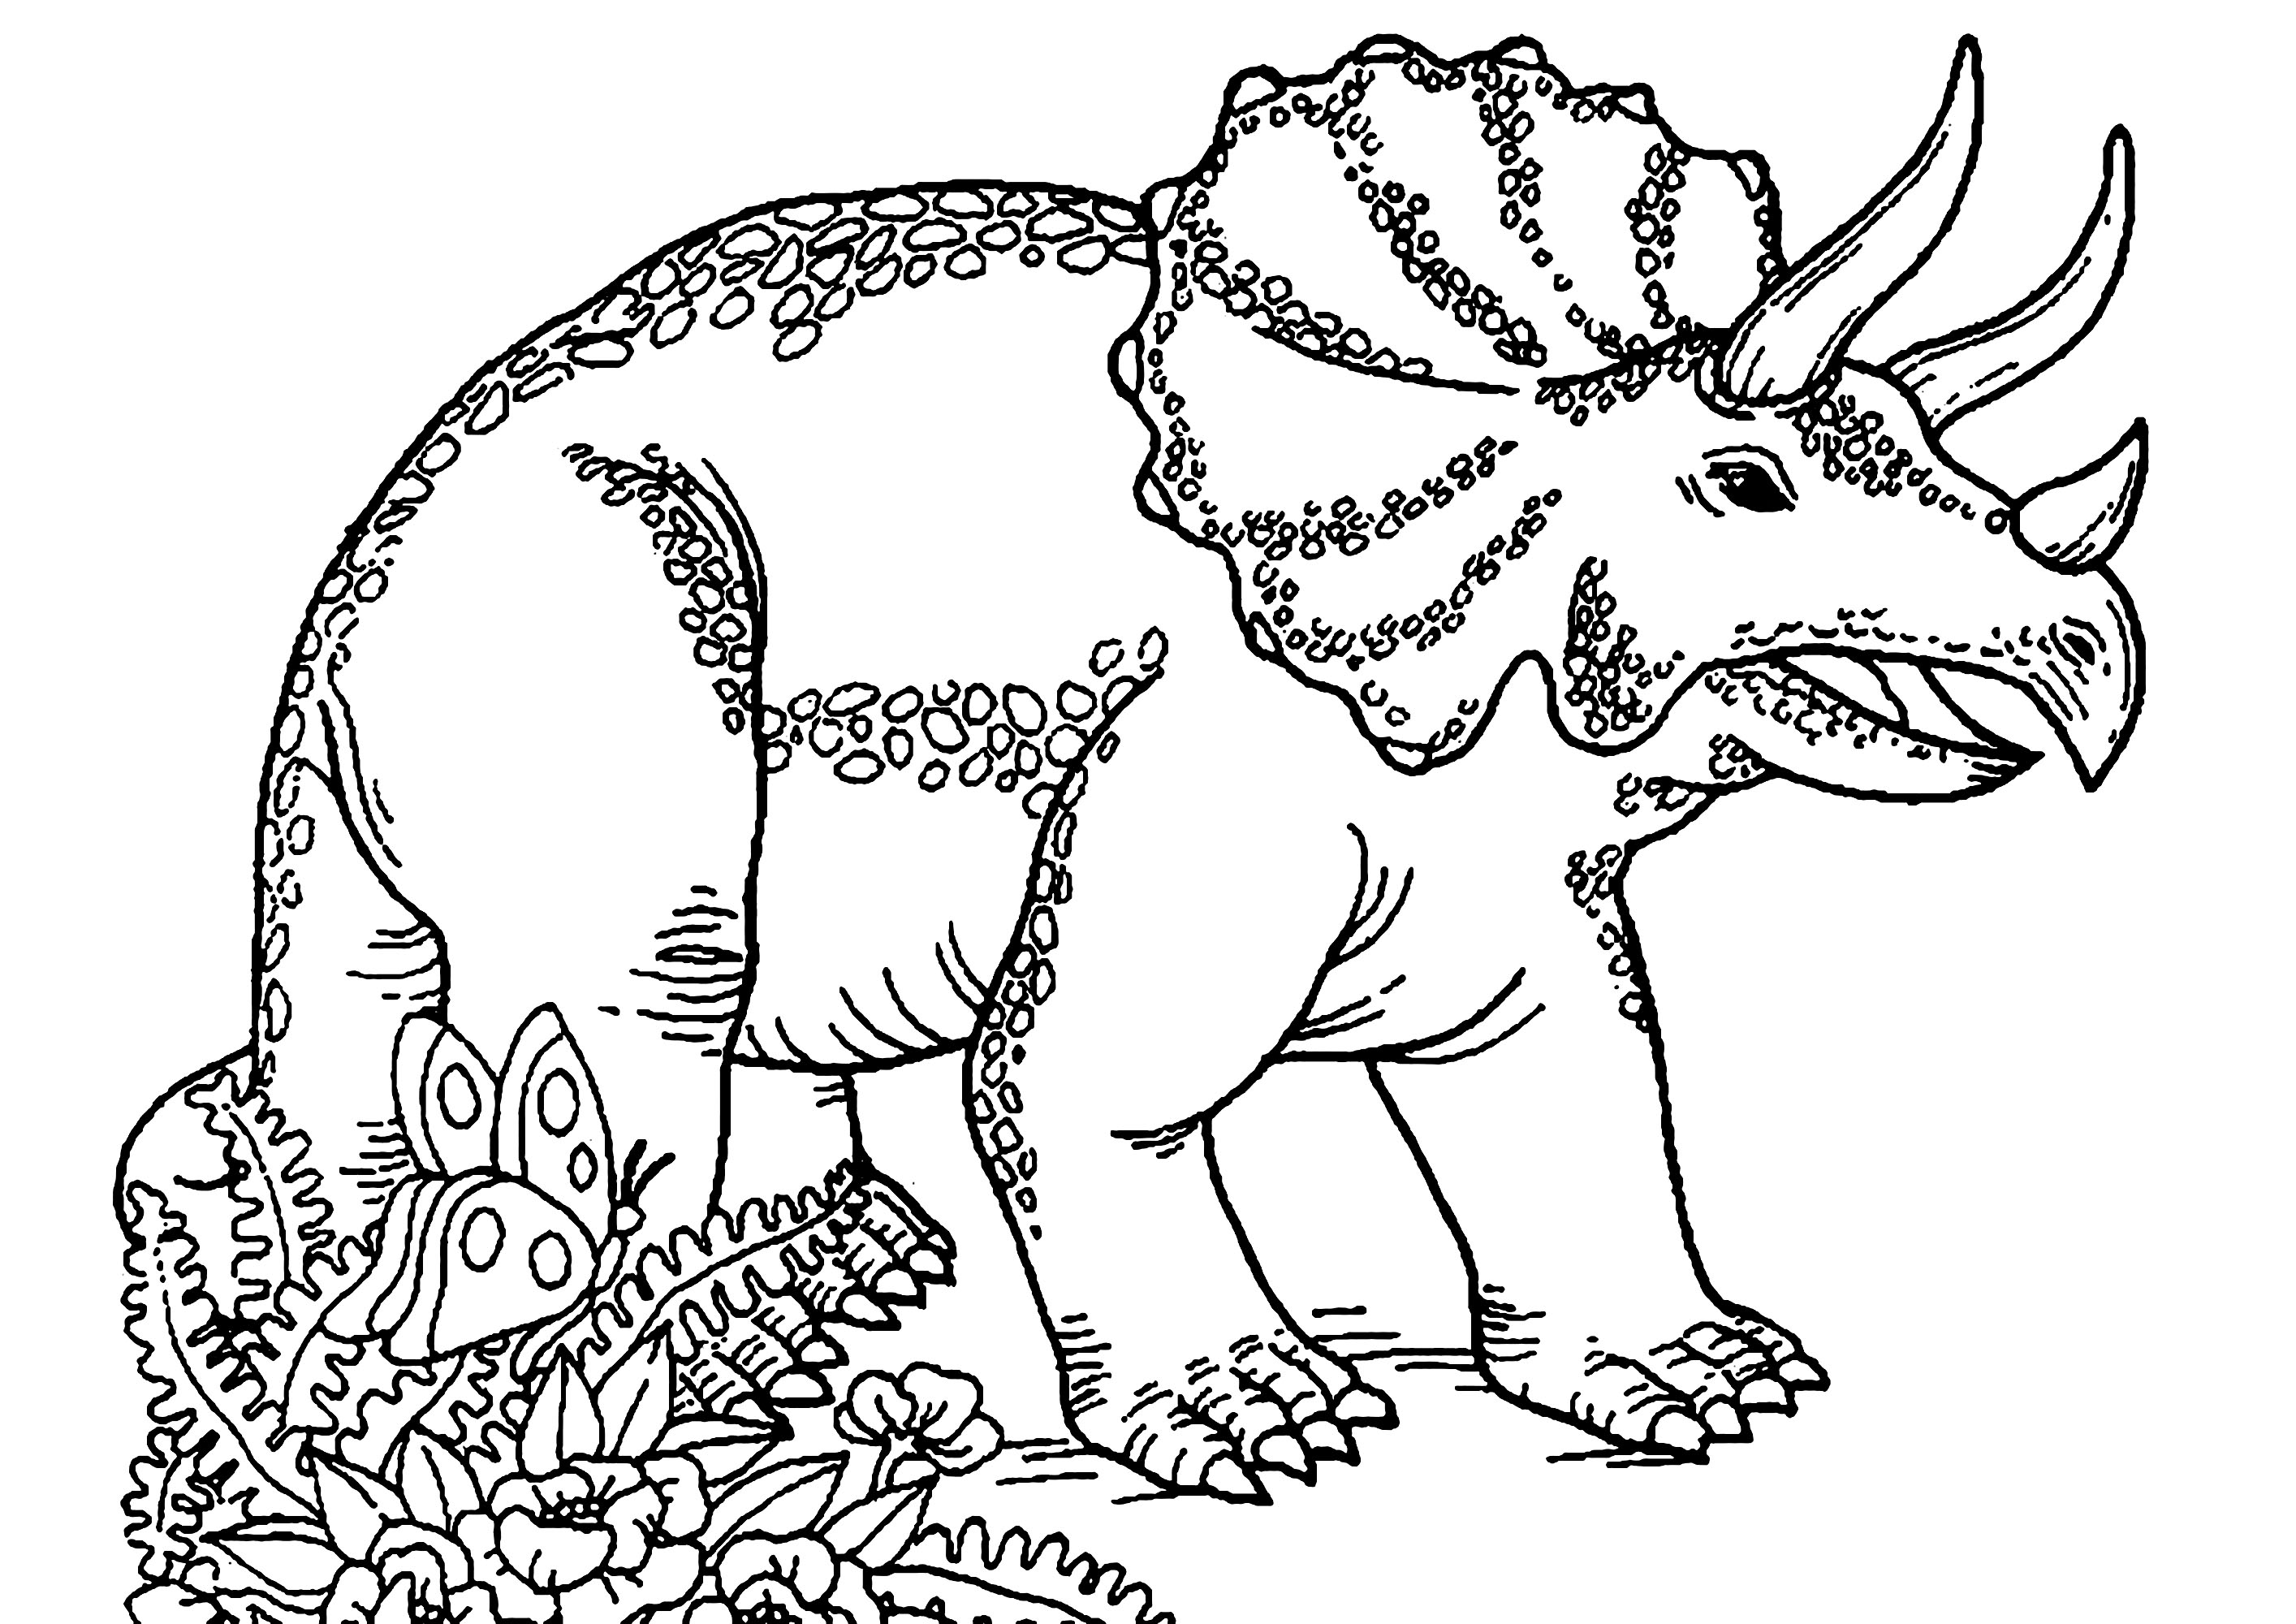 dinosaurs colouring pages dinosaurs to download for free brachiosaurus egg dinosaurs pages colouring